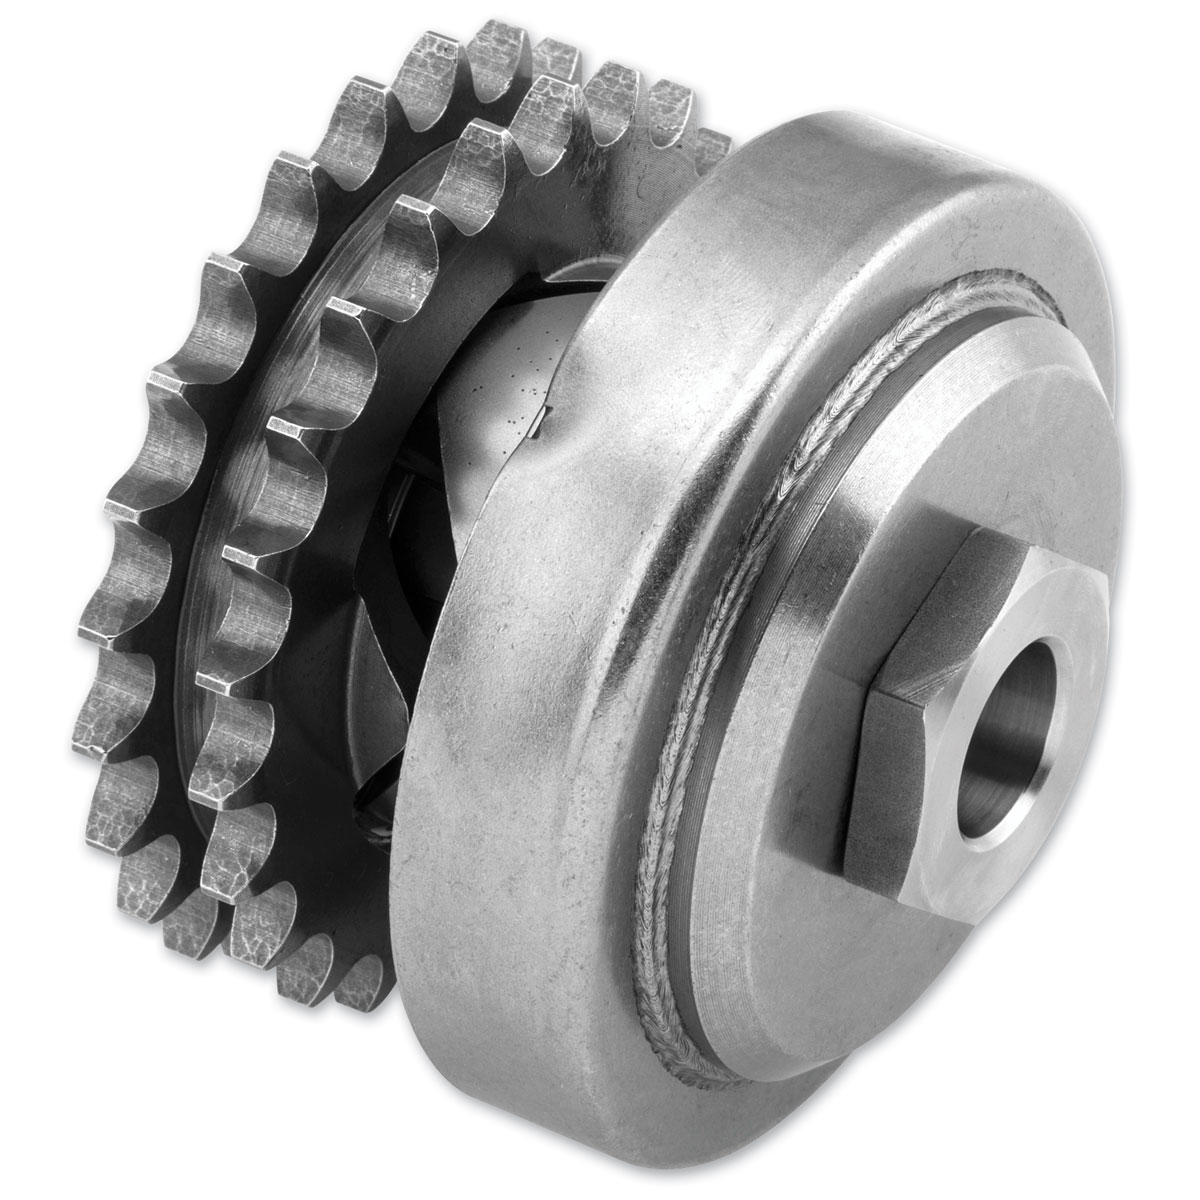 Twin Power Compensating Sprocket Kit 24 Tooth